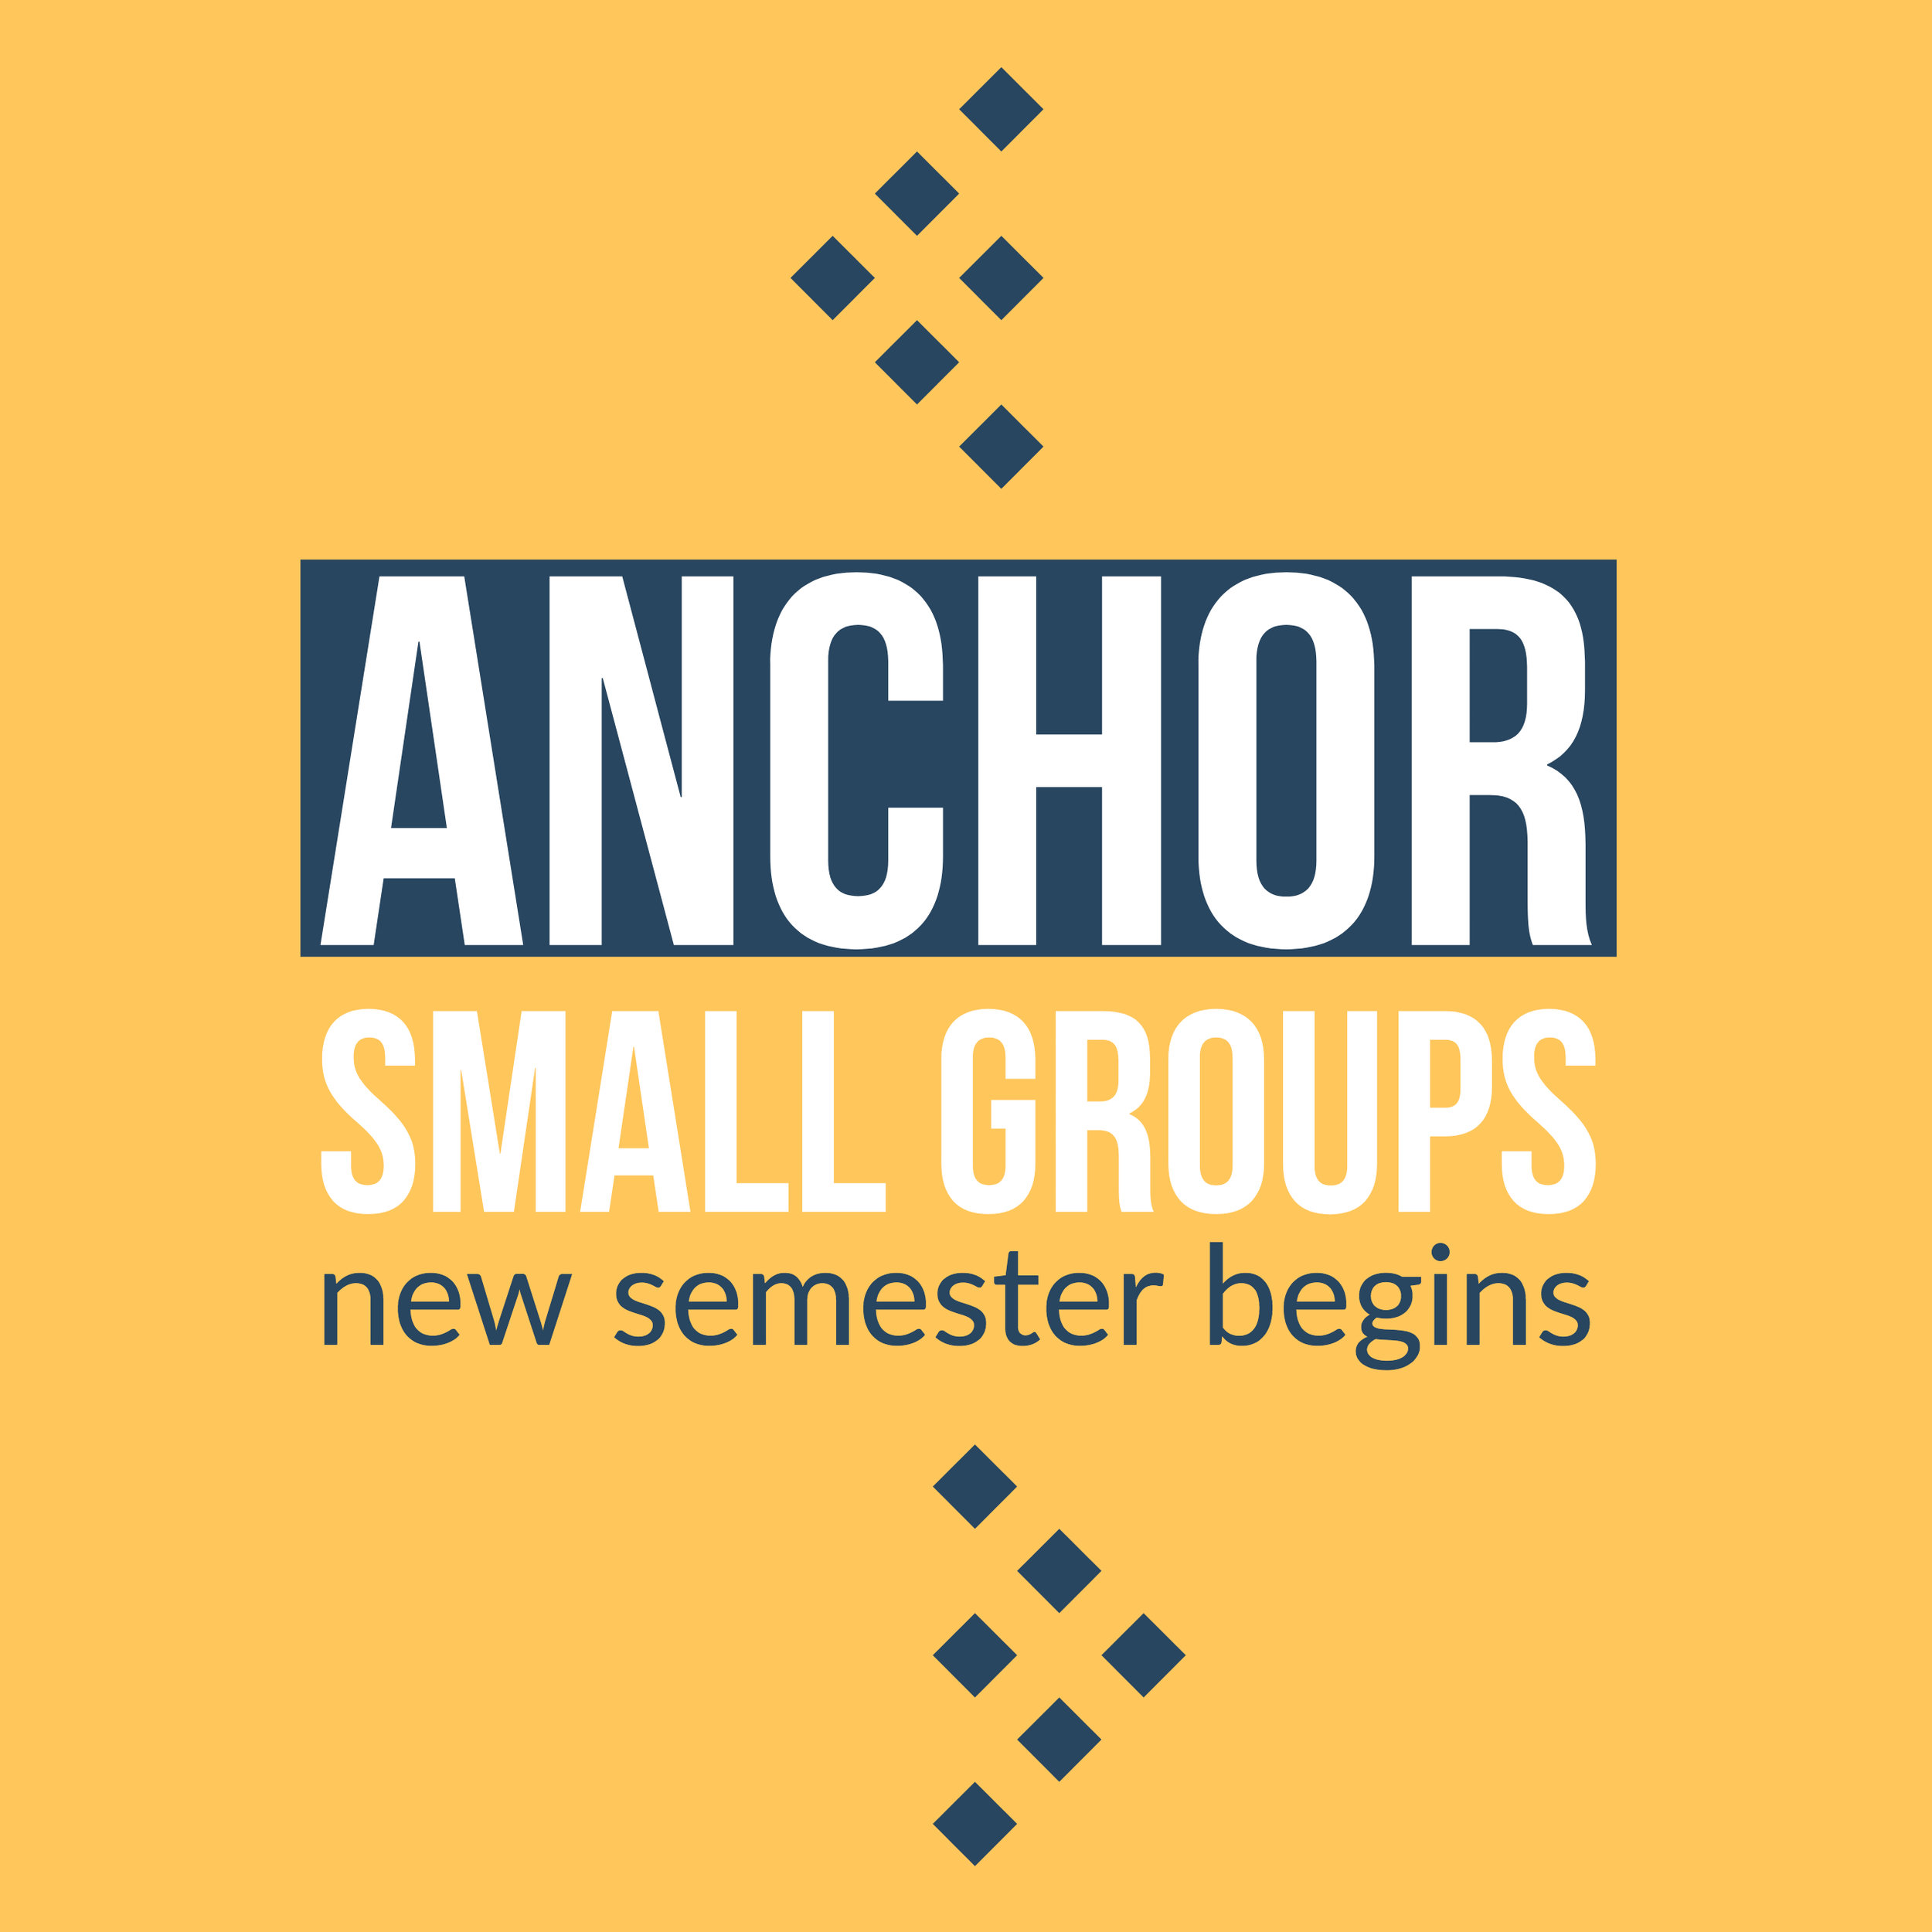 Anchor Small Groups new semester begins January 6th